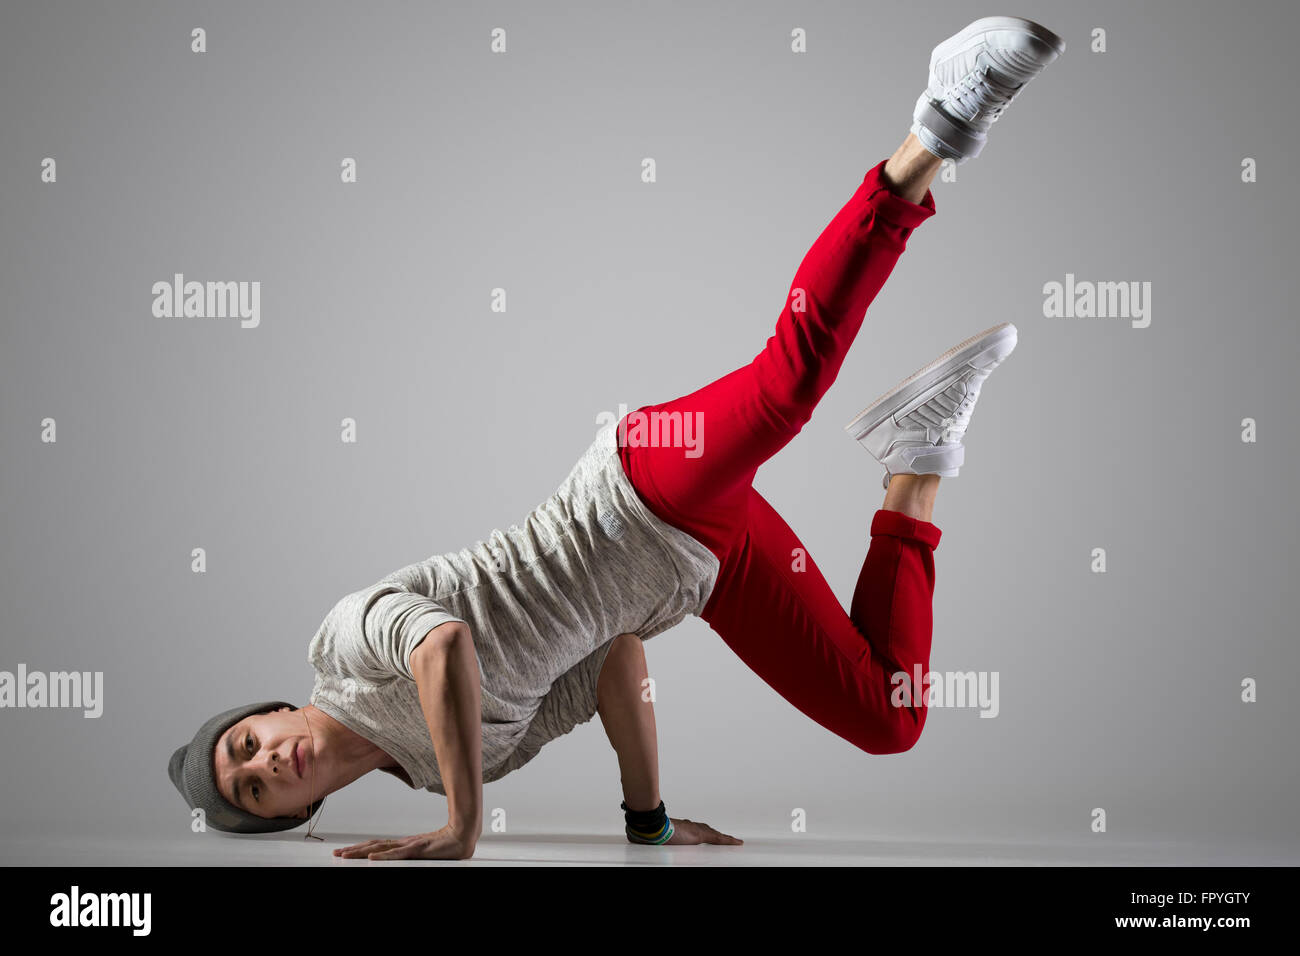 One fit handsome modern style dancer young man in casual red pants and beanie working out, performing breakdance - Stock Image